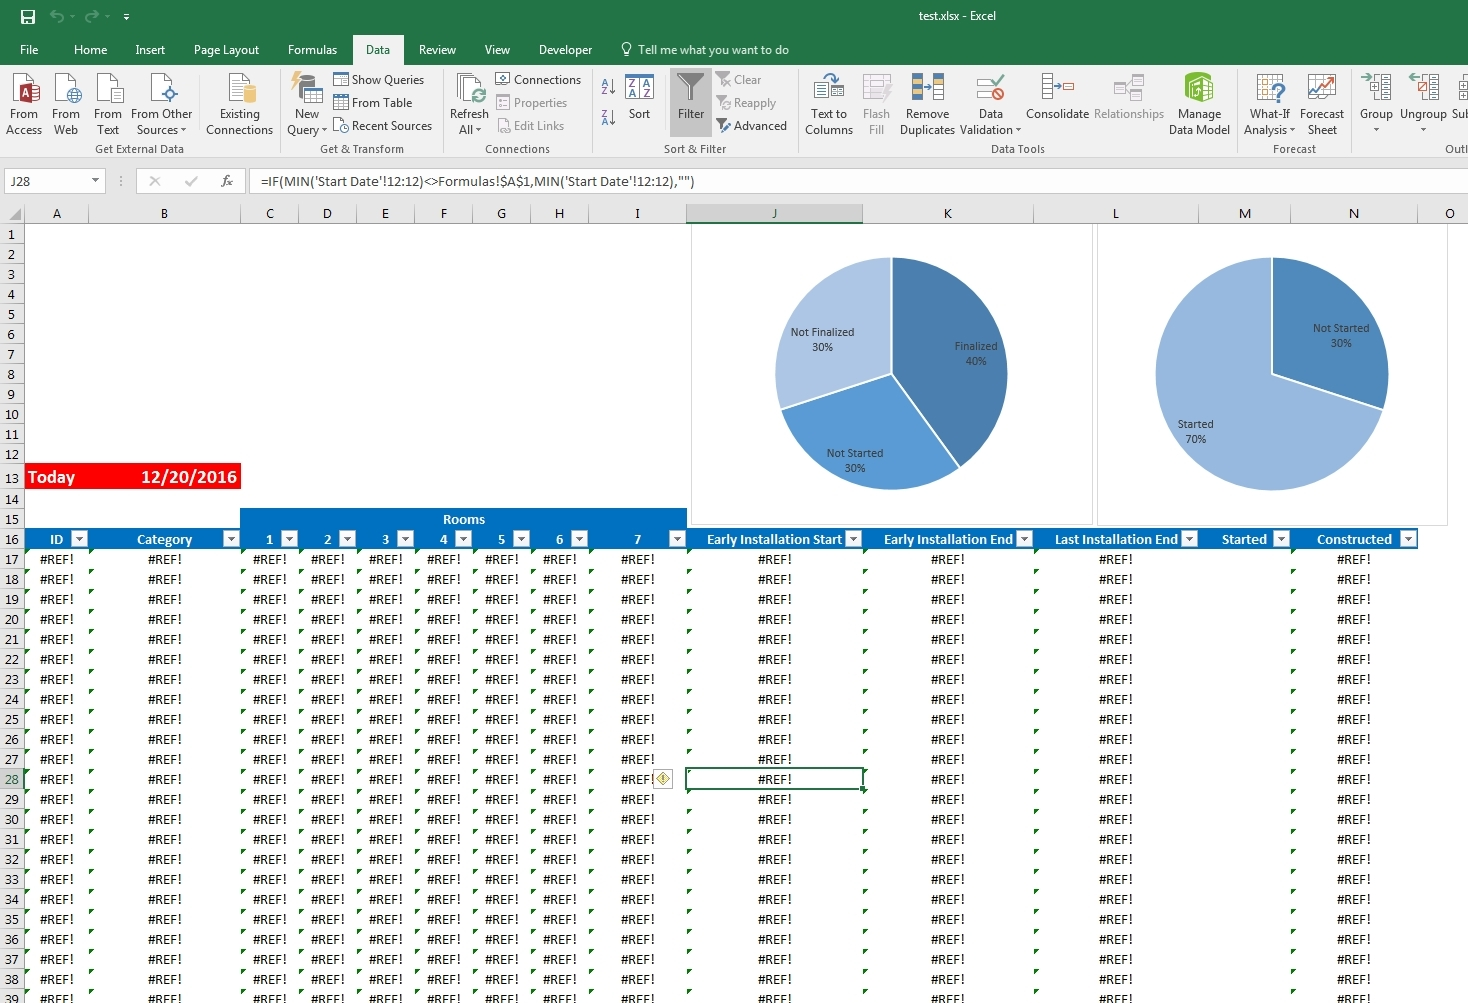 Prevent Excel write to recreate the sheet - Revit - Dynamo